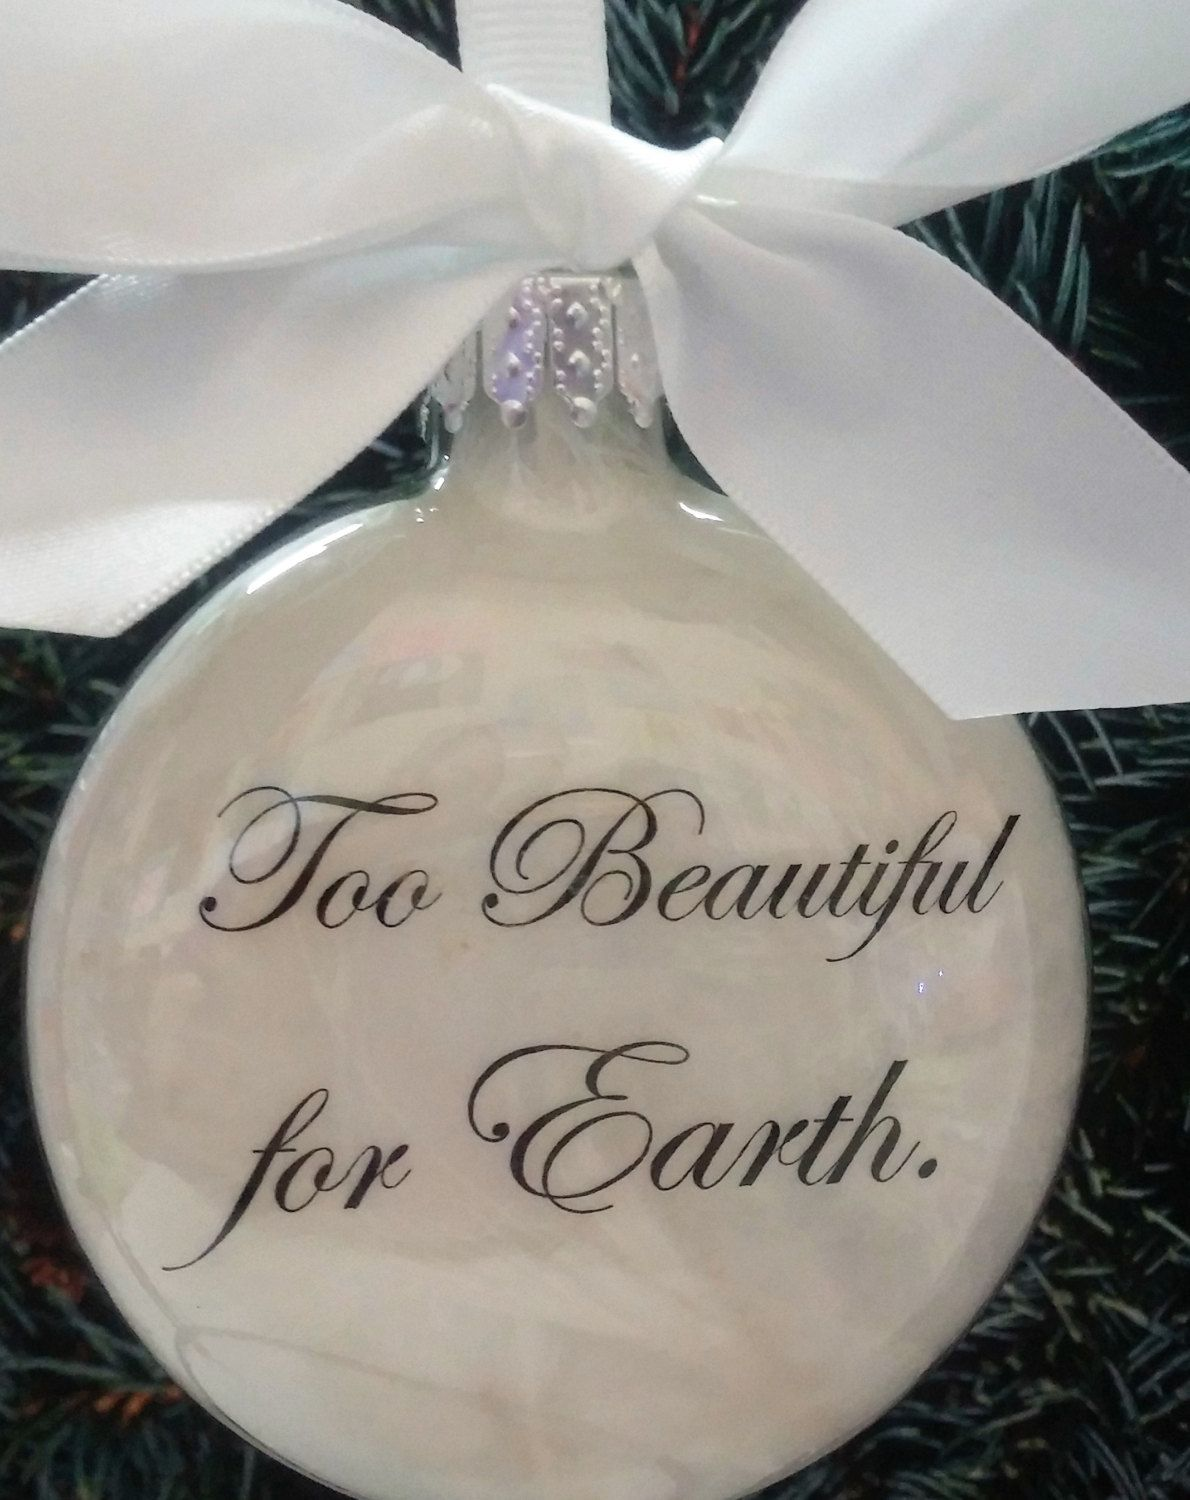 Beautiful glass ornaments - Pregnancy Loss Memorial Ornament Too Beautiful For Earth Child Heaven Glass Christmas Bauble Baby Loss Infant Remembrance Miscarriage Gift